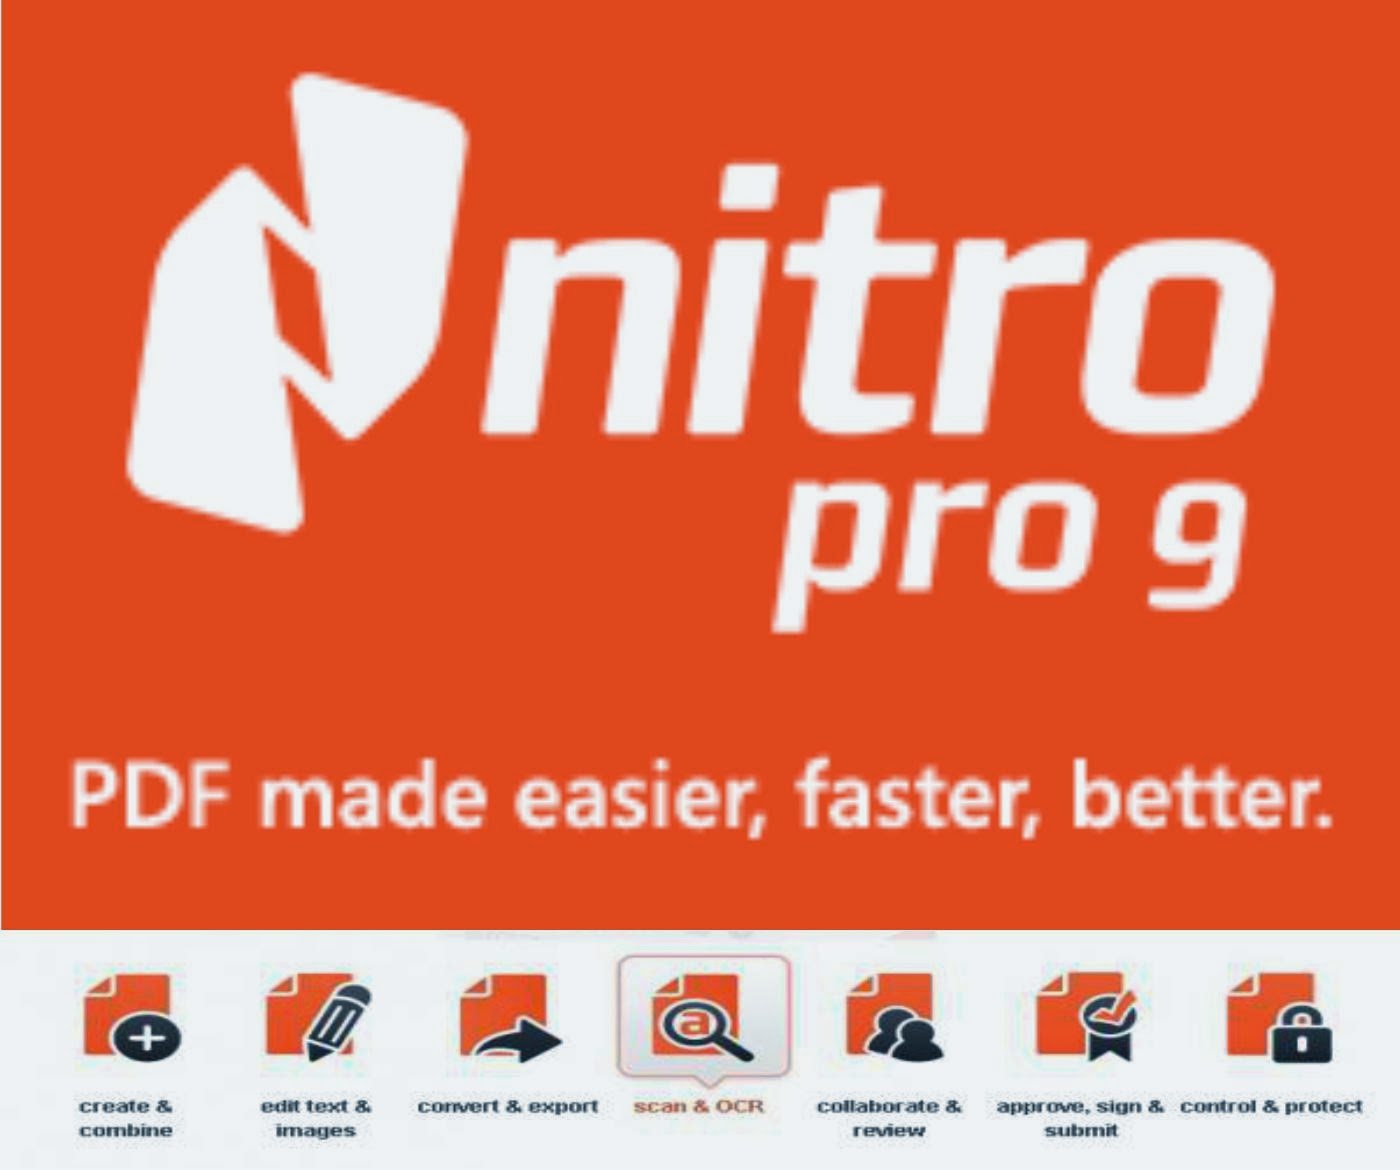 Nitro PDF Pro 9 Crack with Serial Key Full Free Download